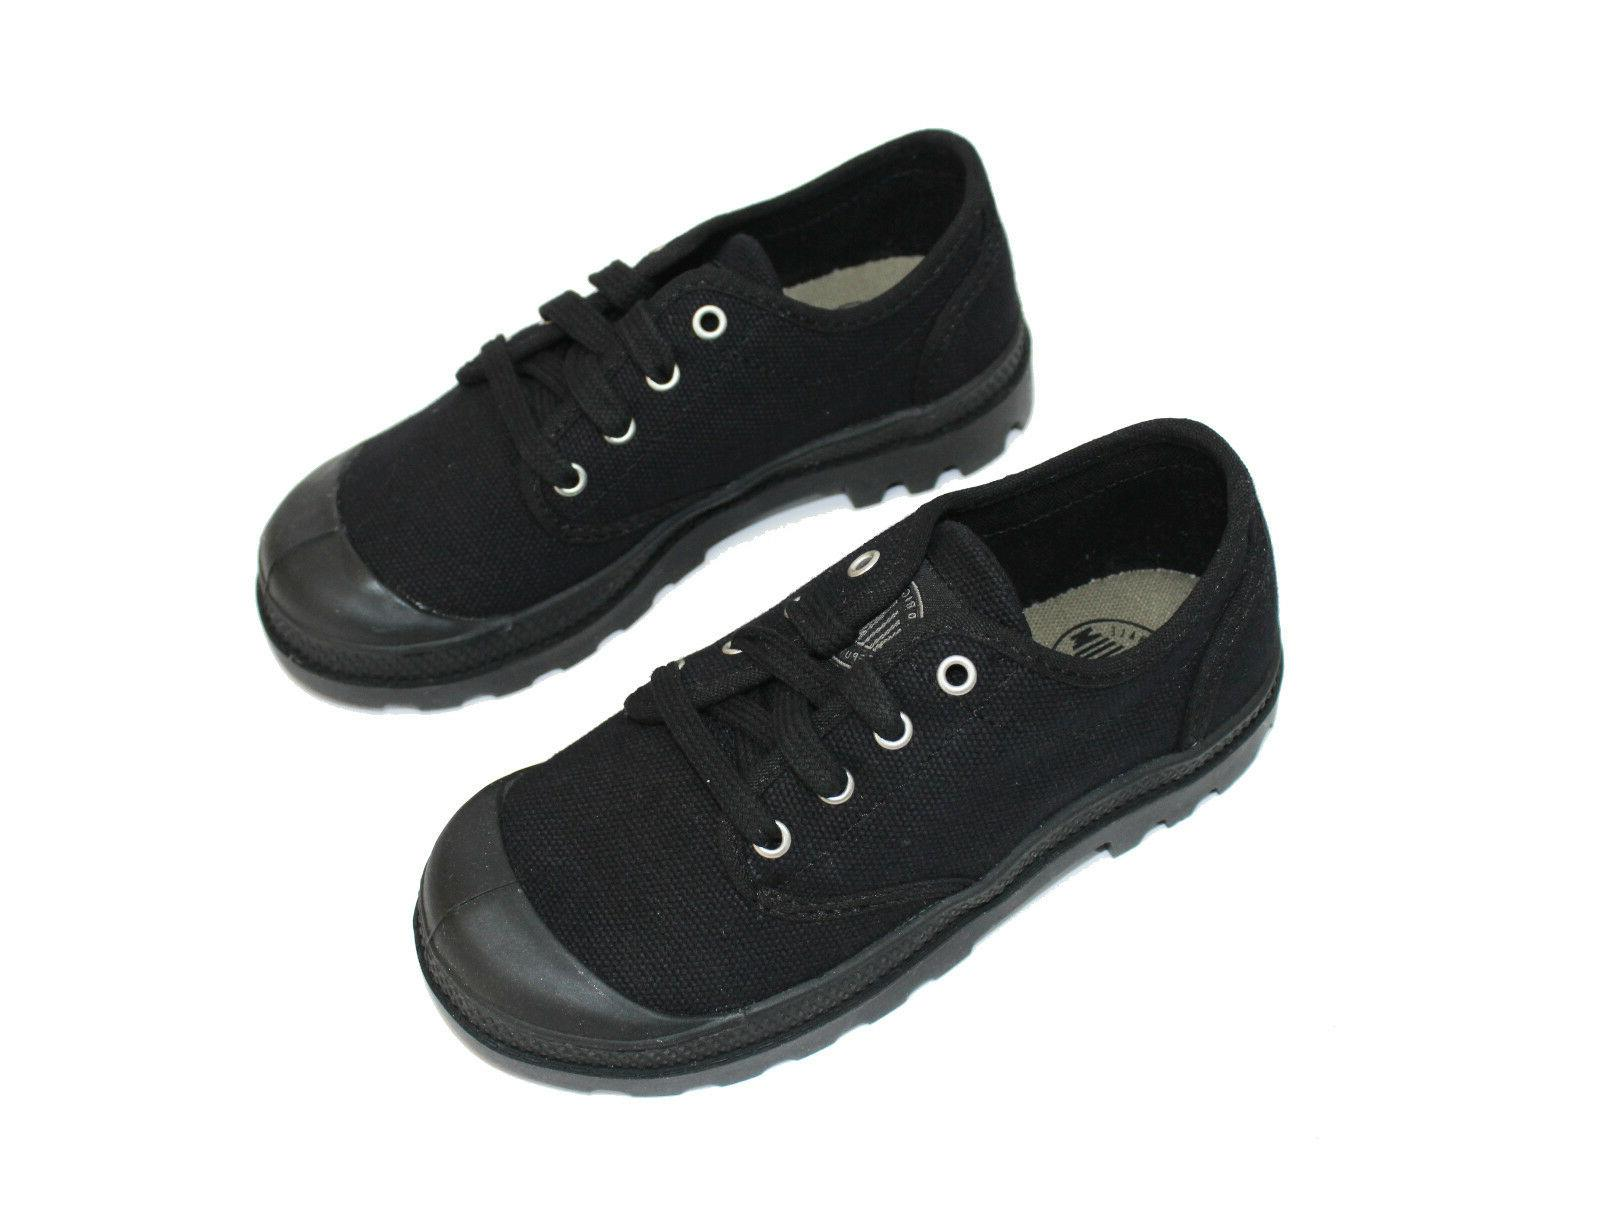 NEW Black Canvas Pampa Shoes 12.5,